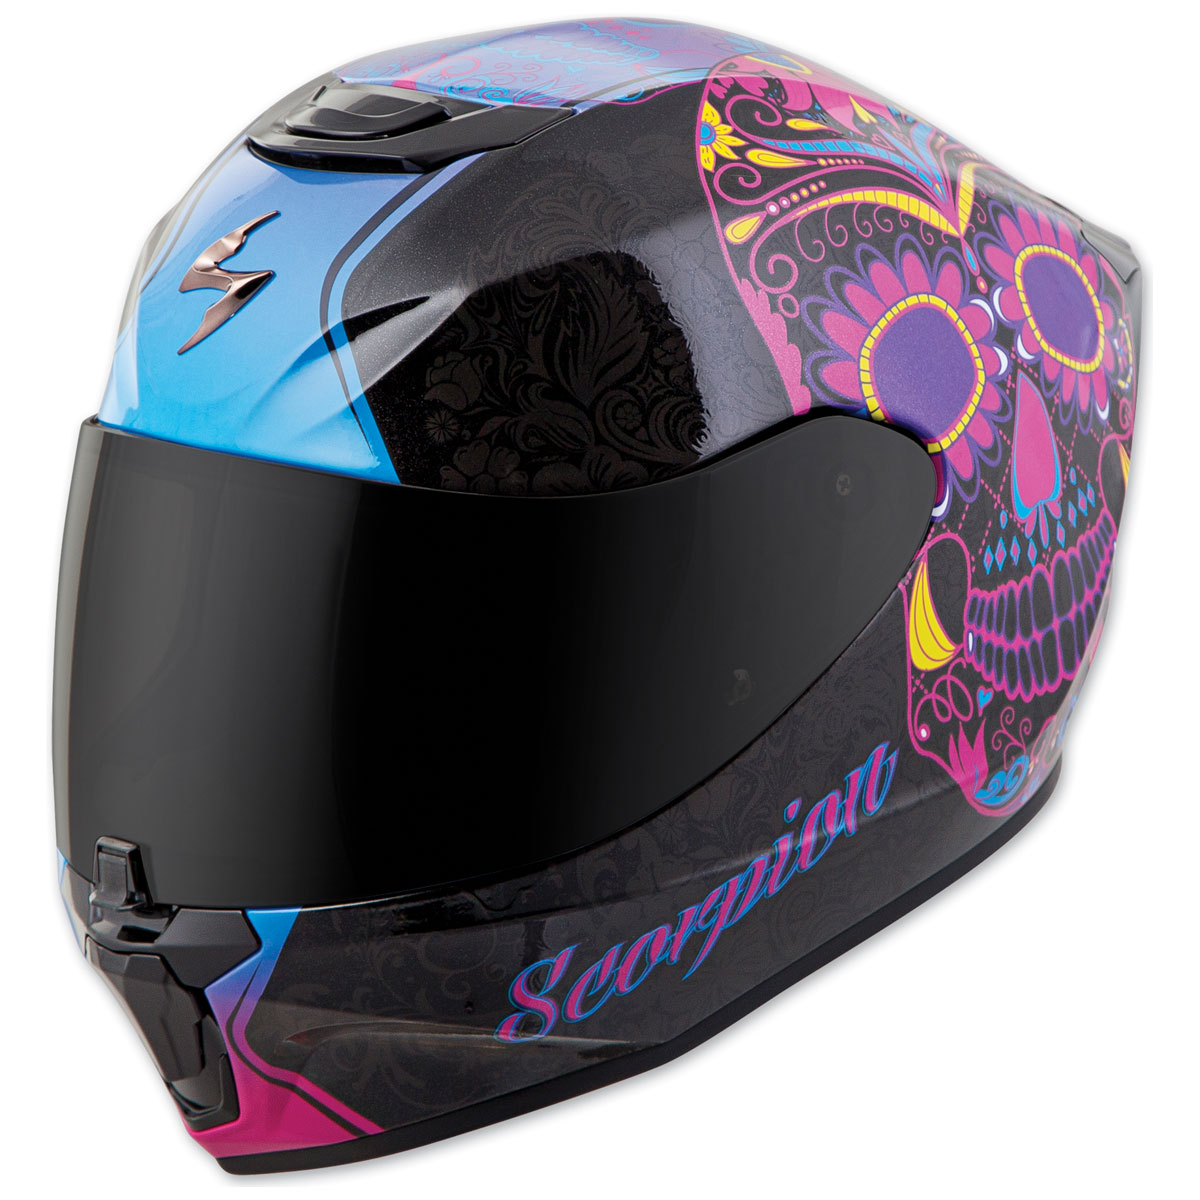 factory outlets wholesale outlet best price Scorpion EXO EXO-R420 Sugarskull Black/Pink Full Face Helmet - 42 ...